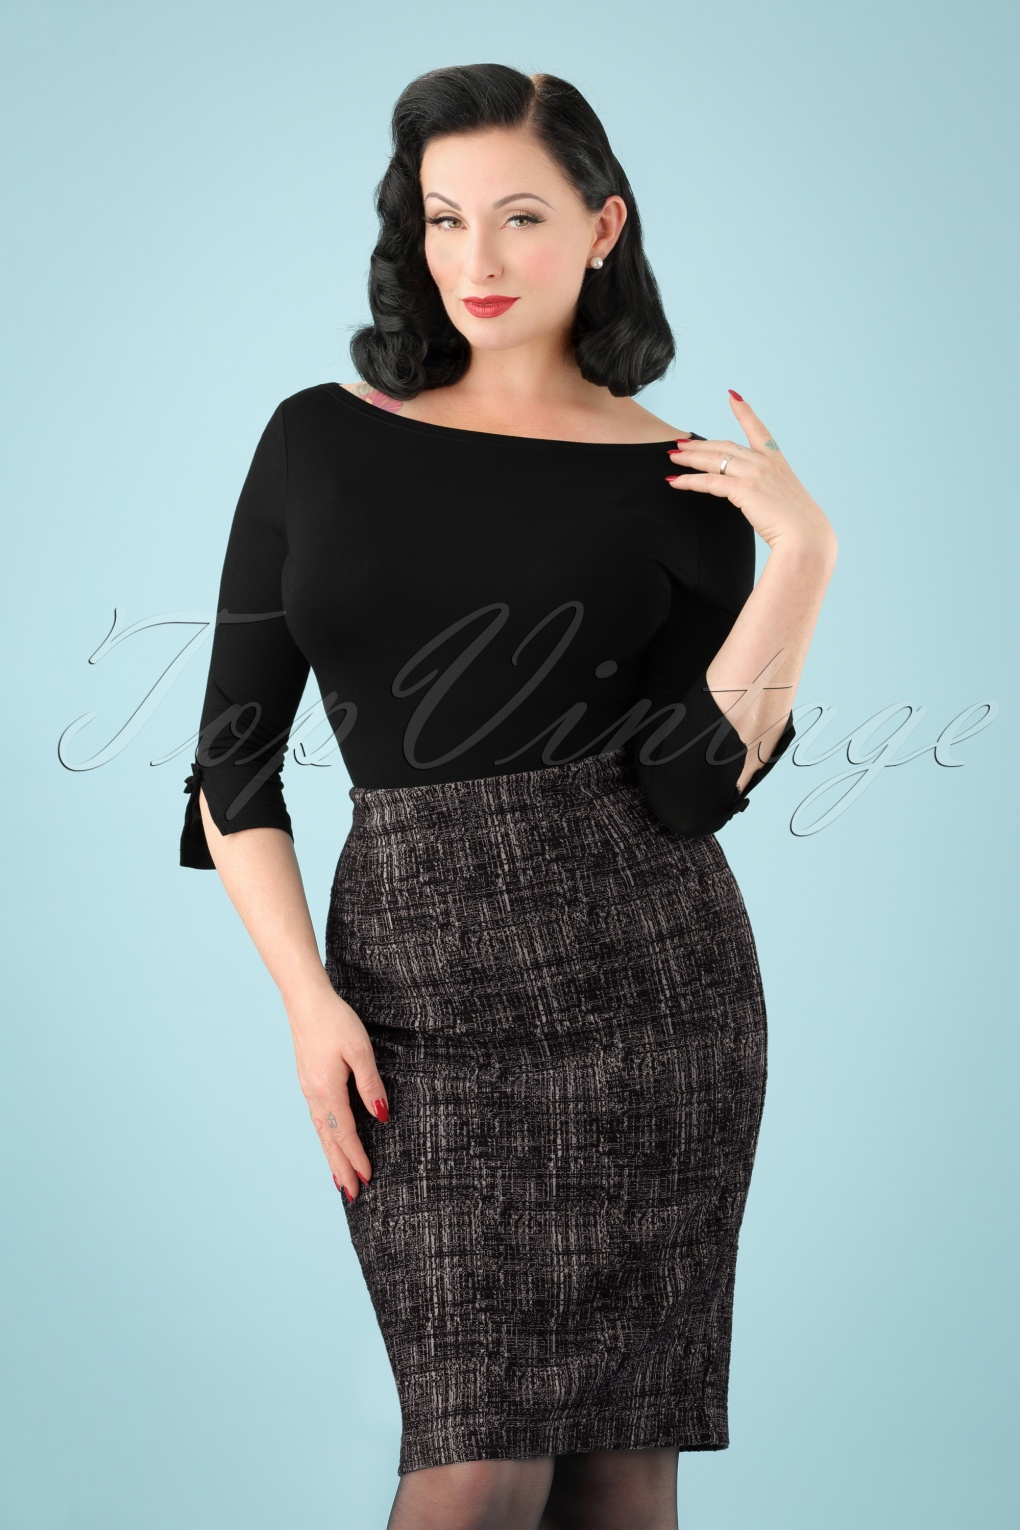 Retro Skirts: Vintage, Pencil, Circle, & Plus Sizes 60s Neve Structured Pencil Skirt in Black and White £48.89 AT vintagedancer.com